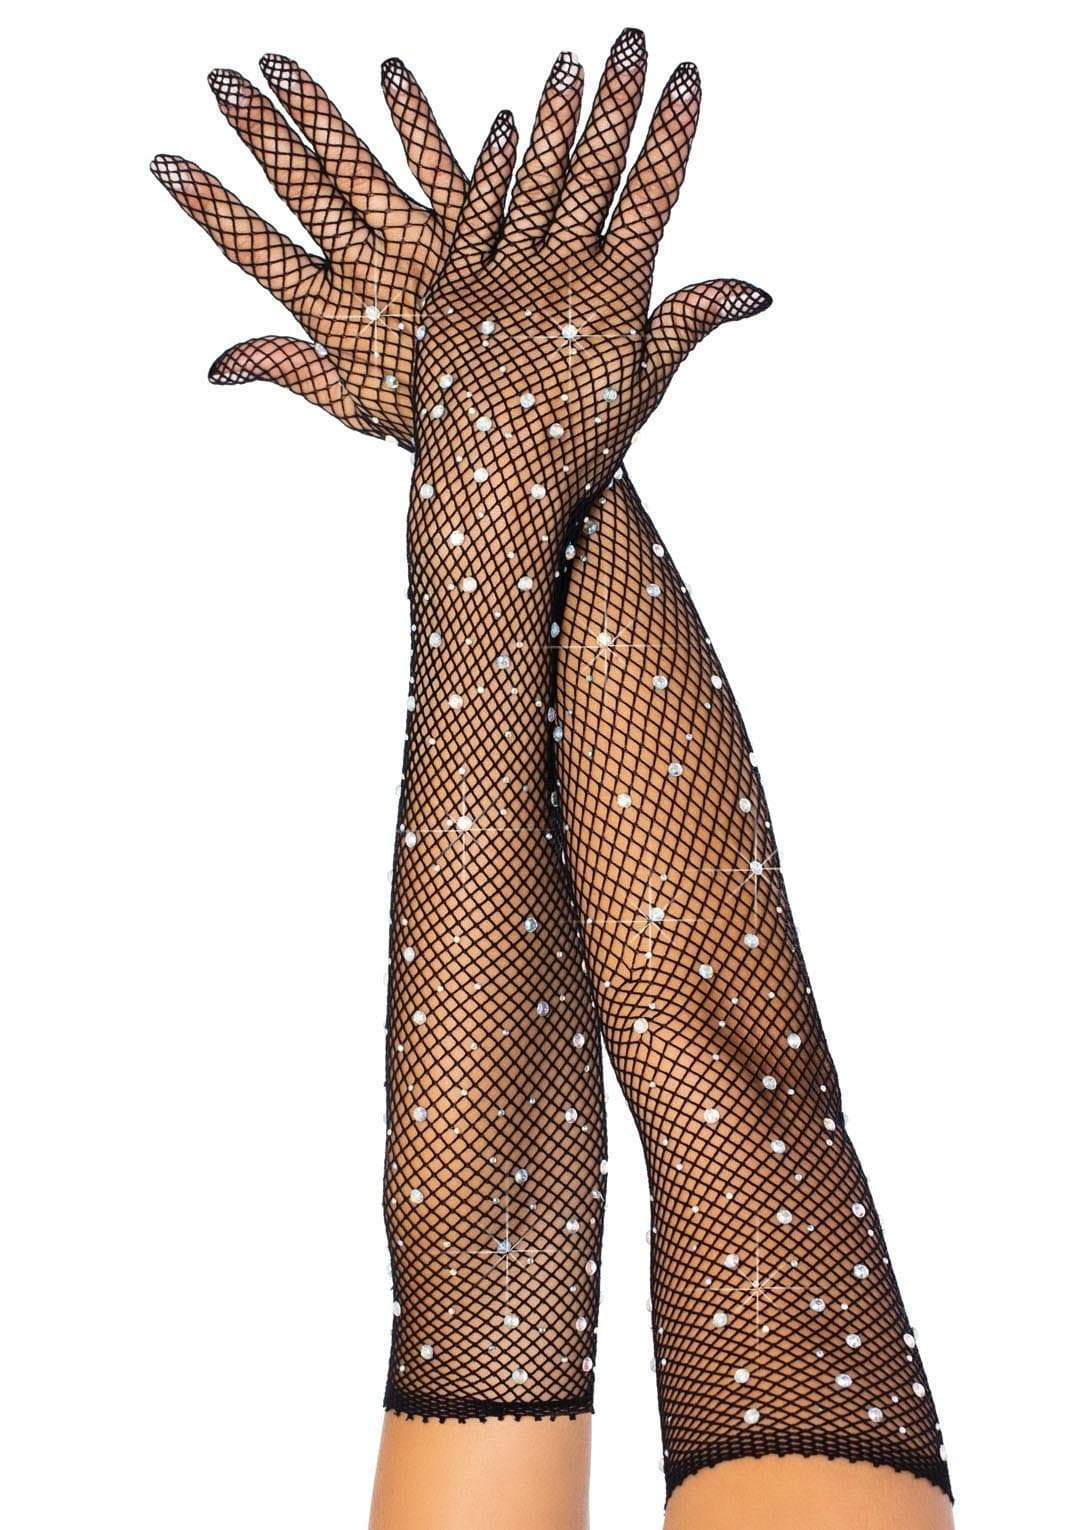 Black Rhinestone Fishnet Long Gloves